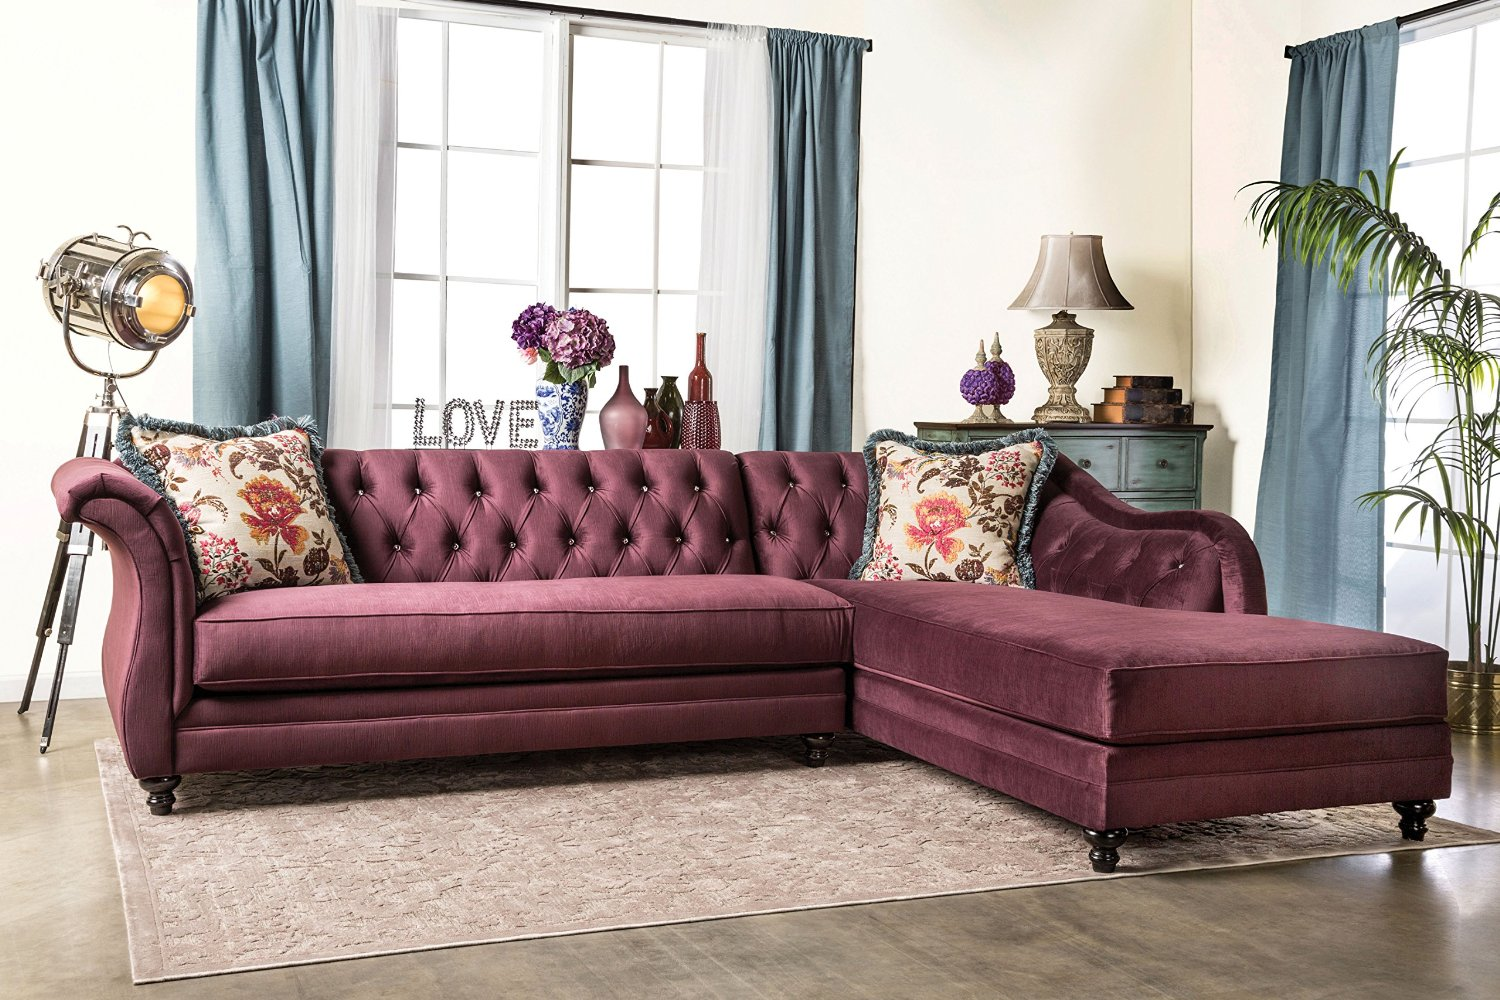 Buy A Chesterfield Sofa 25 Best Chesterfield Sofas To Buy In 2019